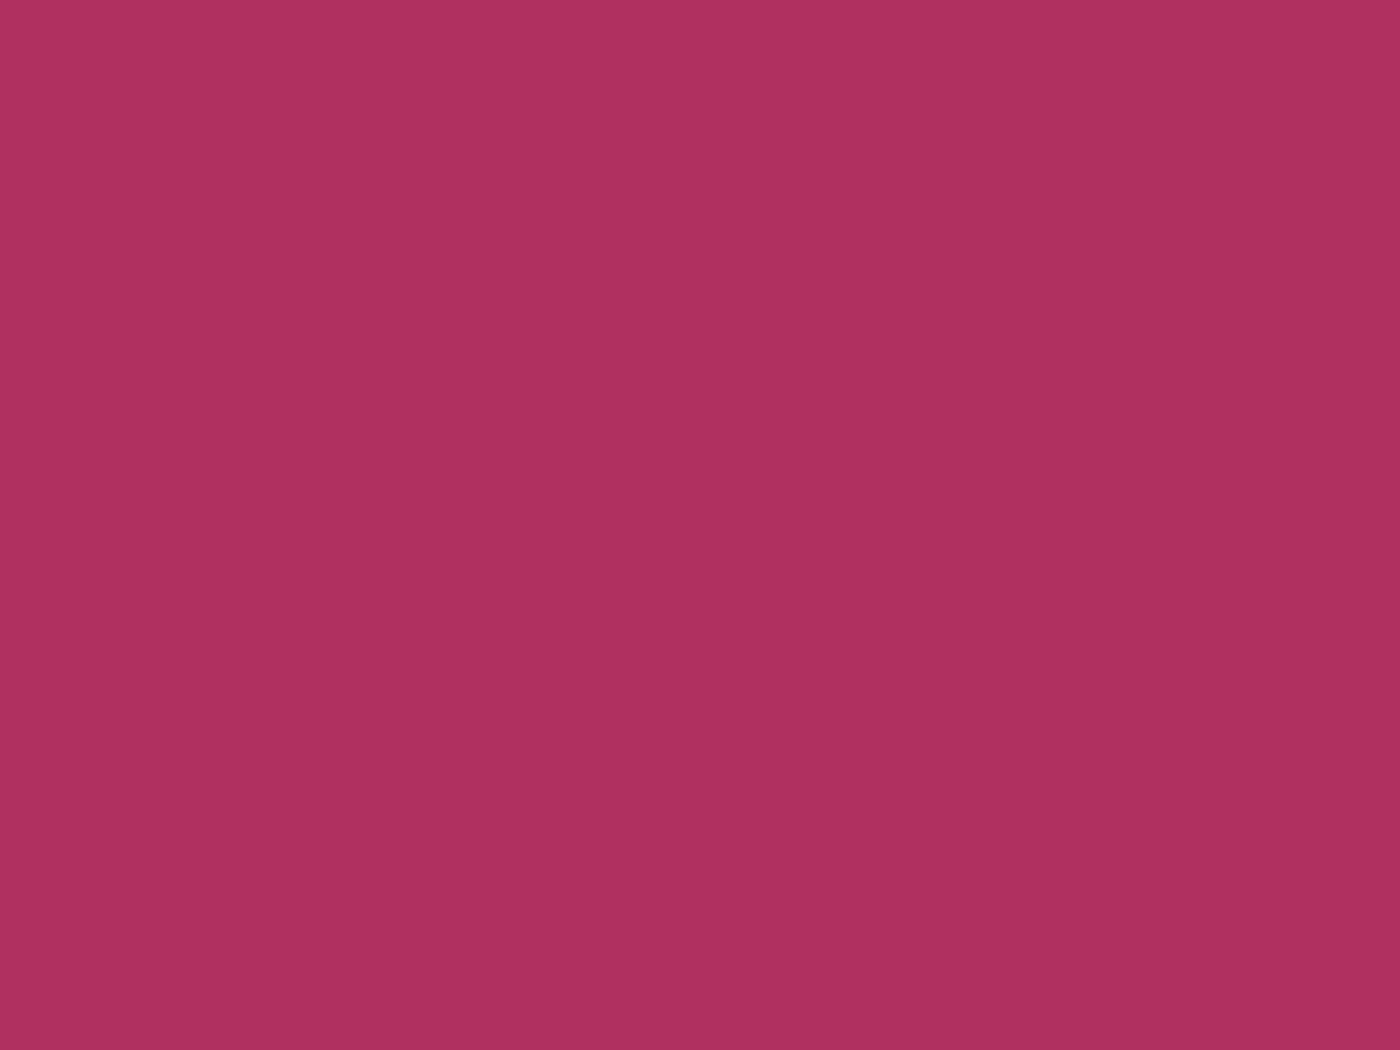 1400x1050 Rich Maroon Solid Color Background